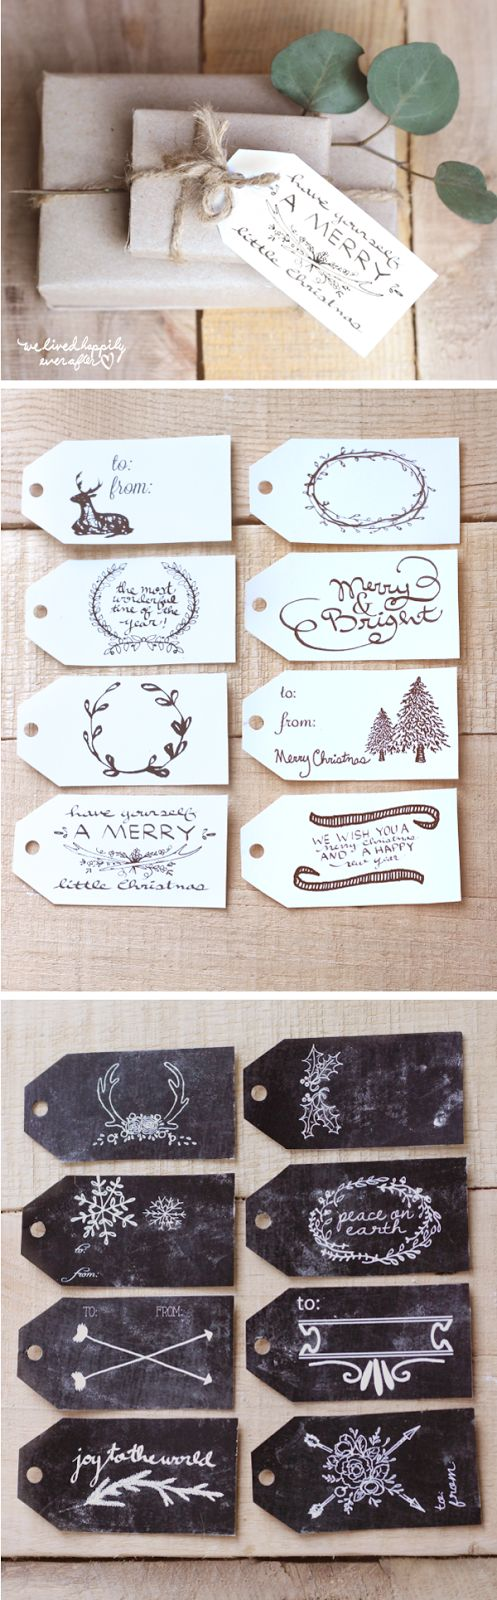 FREE Printable Christmas Gift Tags - In White and Chalkboard Designs. Would look great printed on brown craft paper too!